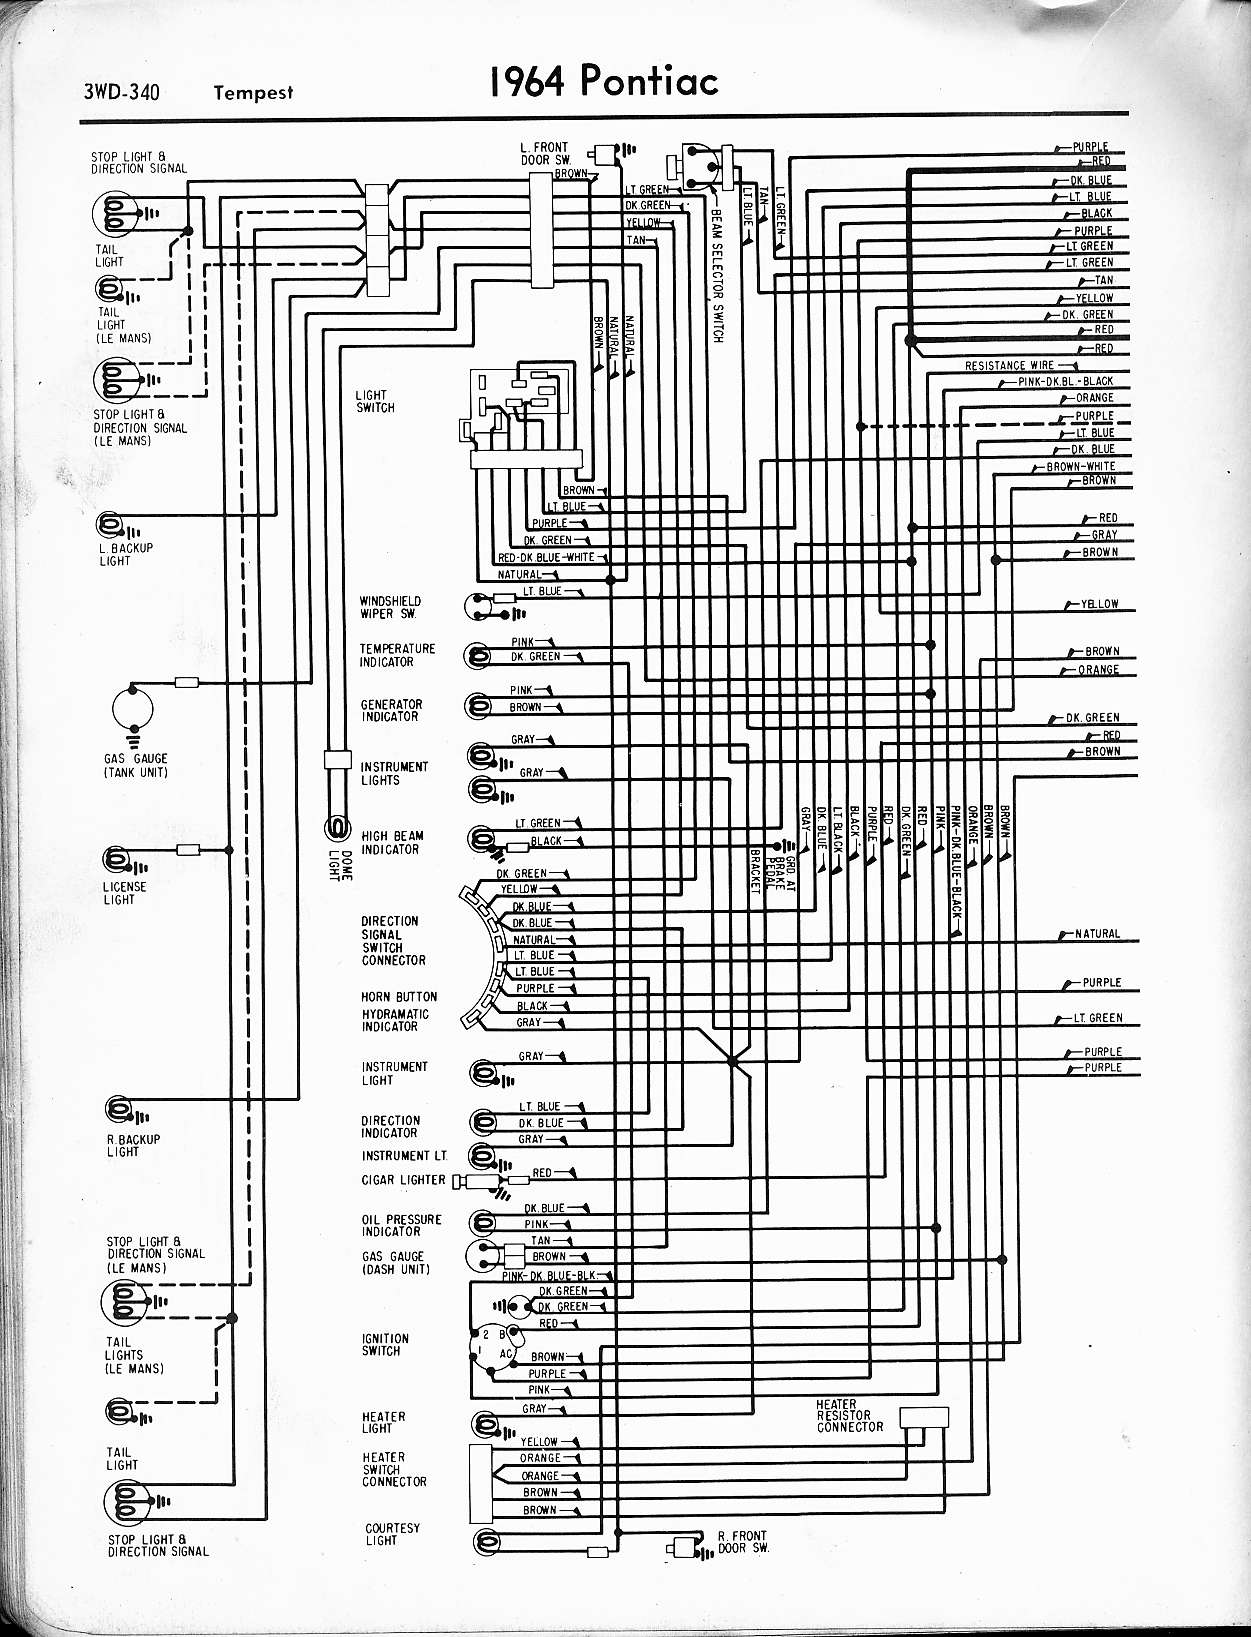 wallace racing wiring diagrams rh wallaceracing com 1966 Pontiac OHC Wiring-Diagram 2001 Pontiac Grand AM Wiring Diagram